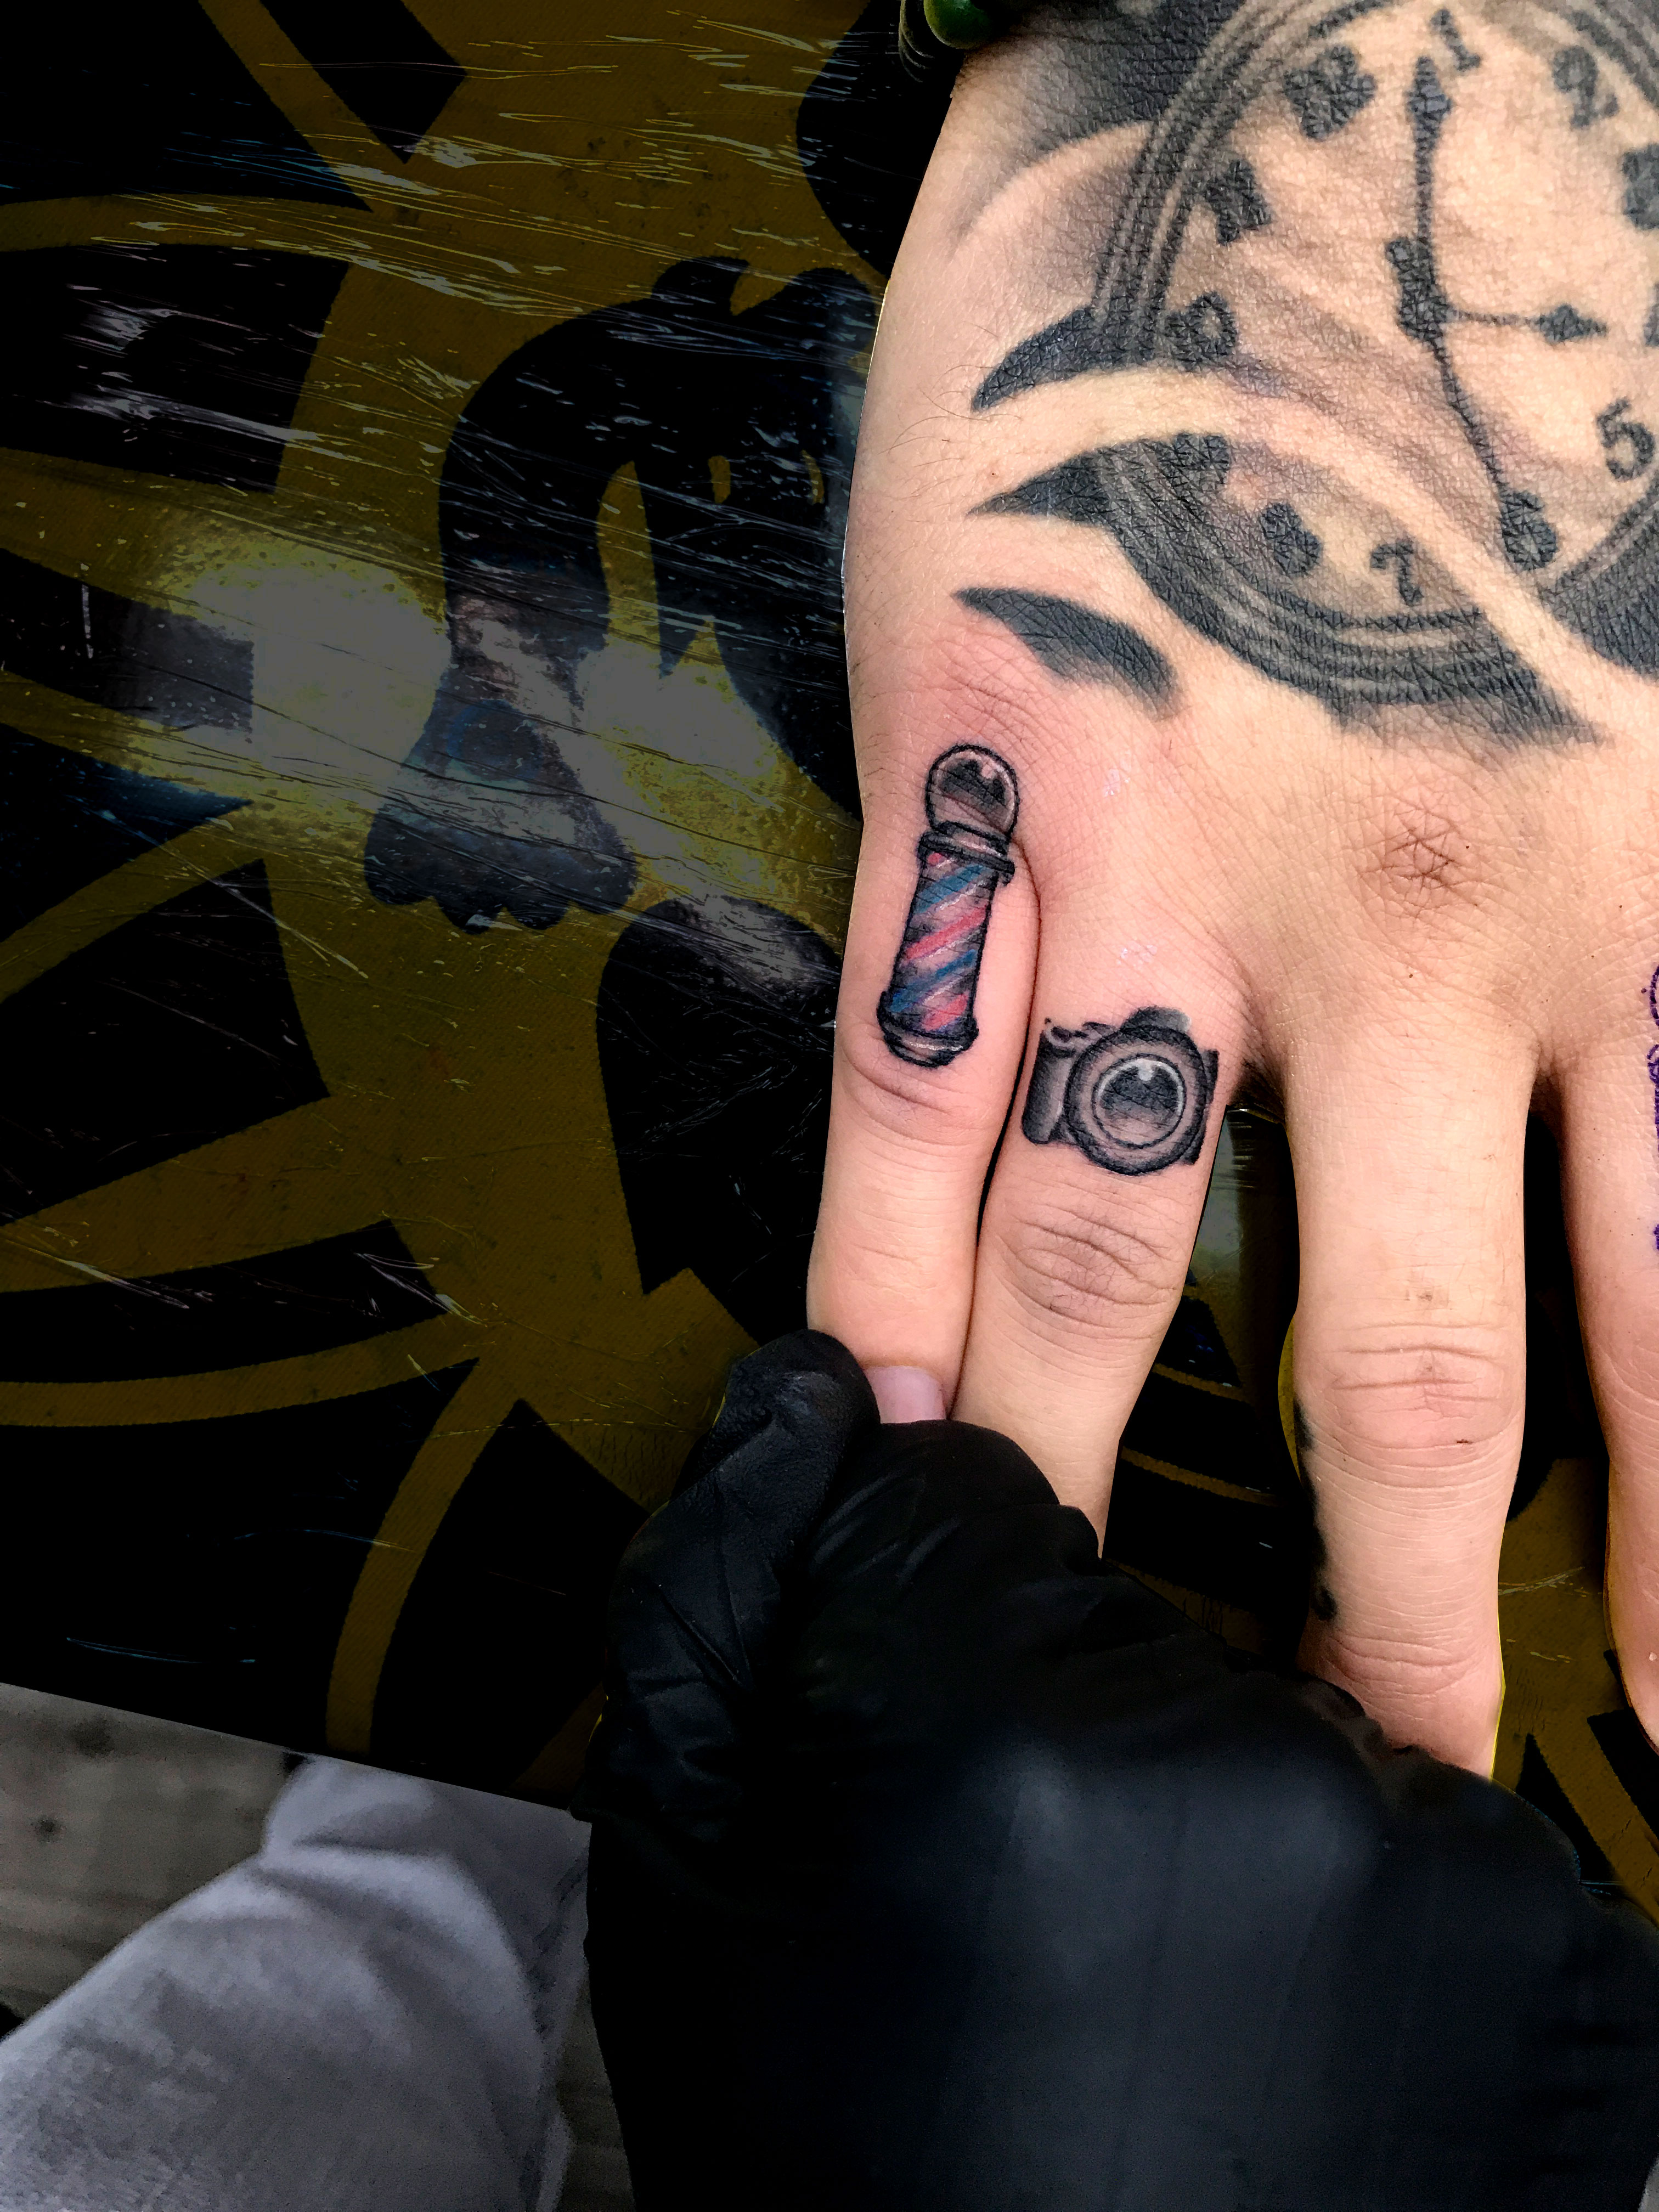 Q Tattoo in Huntington Beach - Sara Delara - small finger tattoos - camera and barber shop